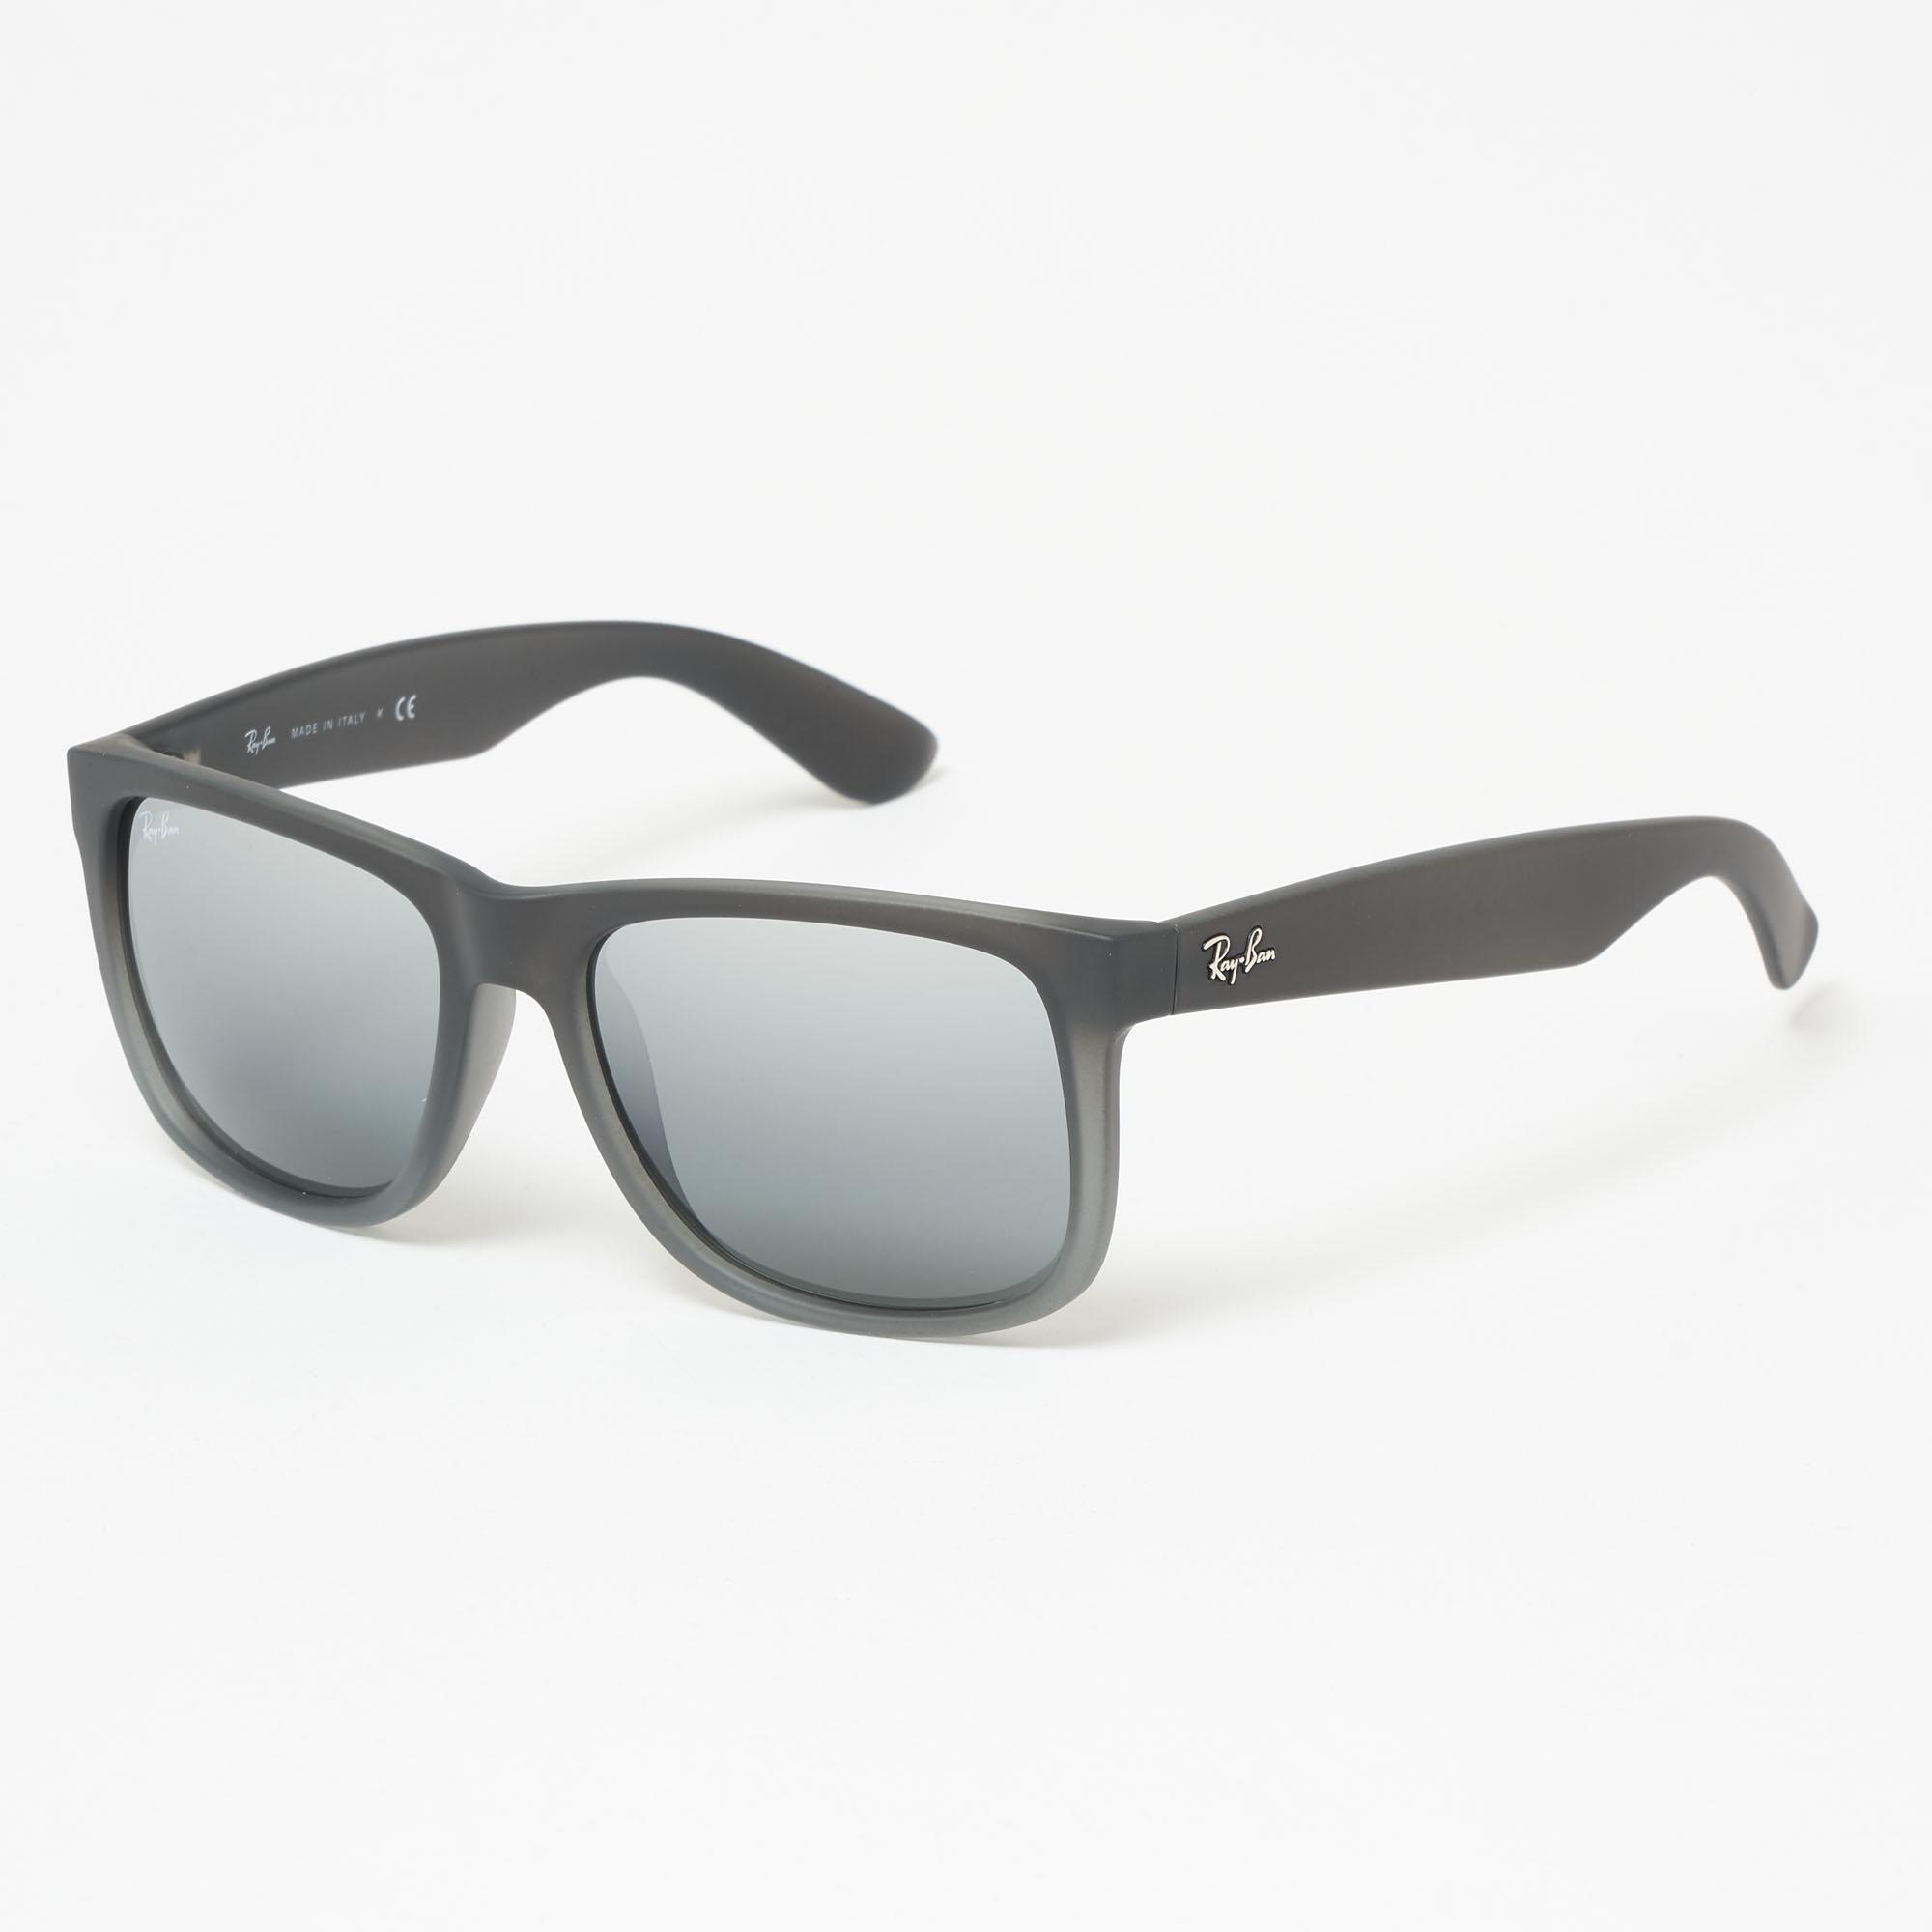 f7163e640 Ray-Ban Justin Smoke Grey Sunglasses 0Rb4165-852/88 for Men - Lyst